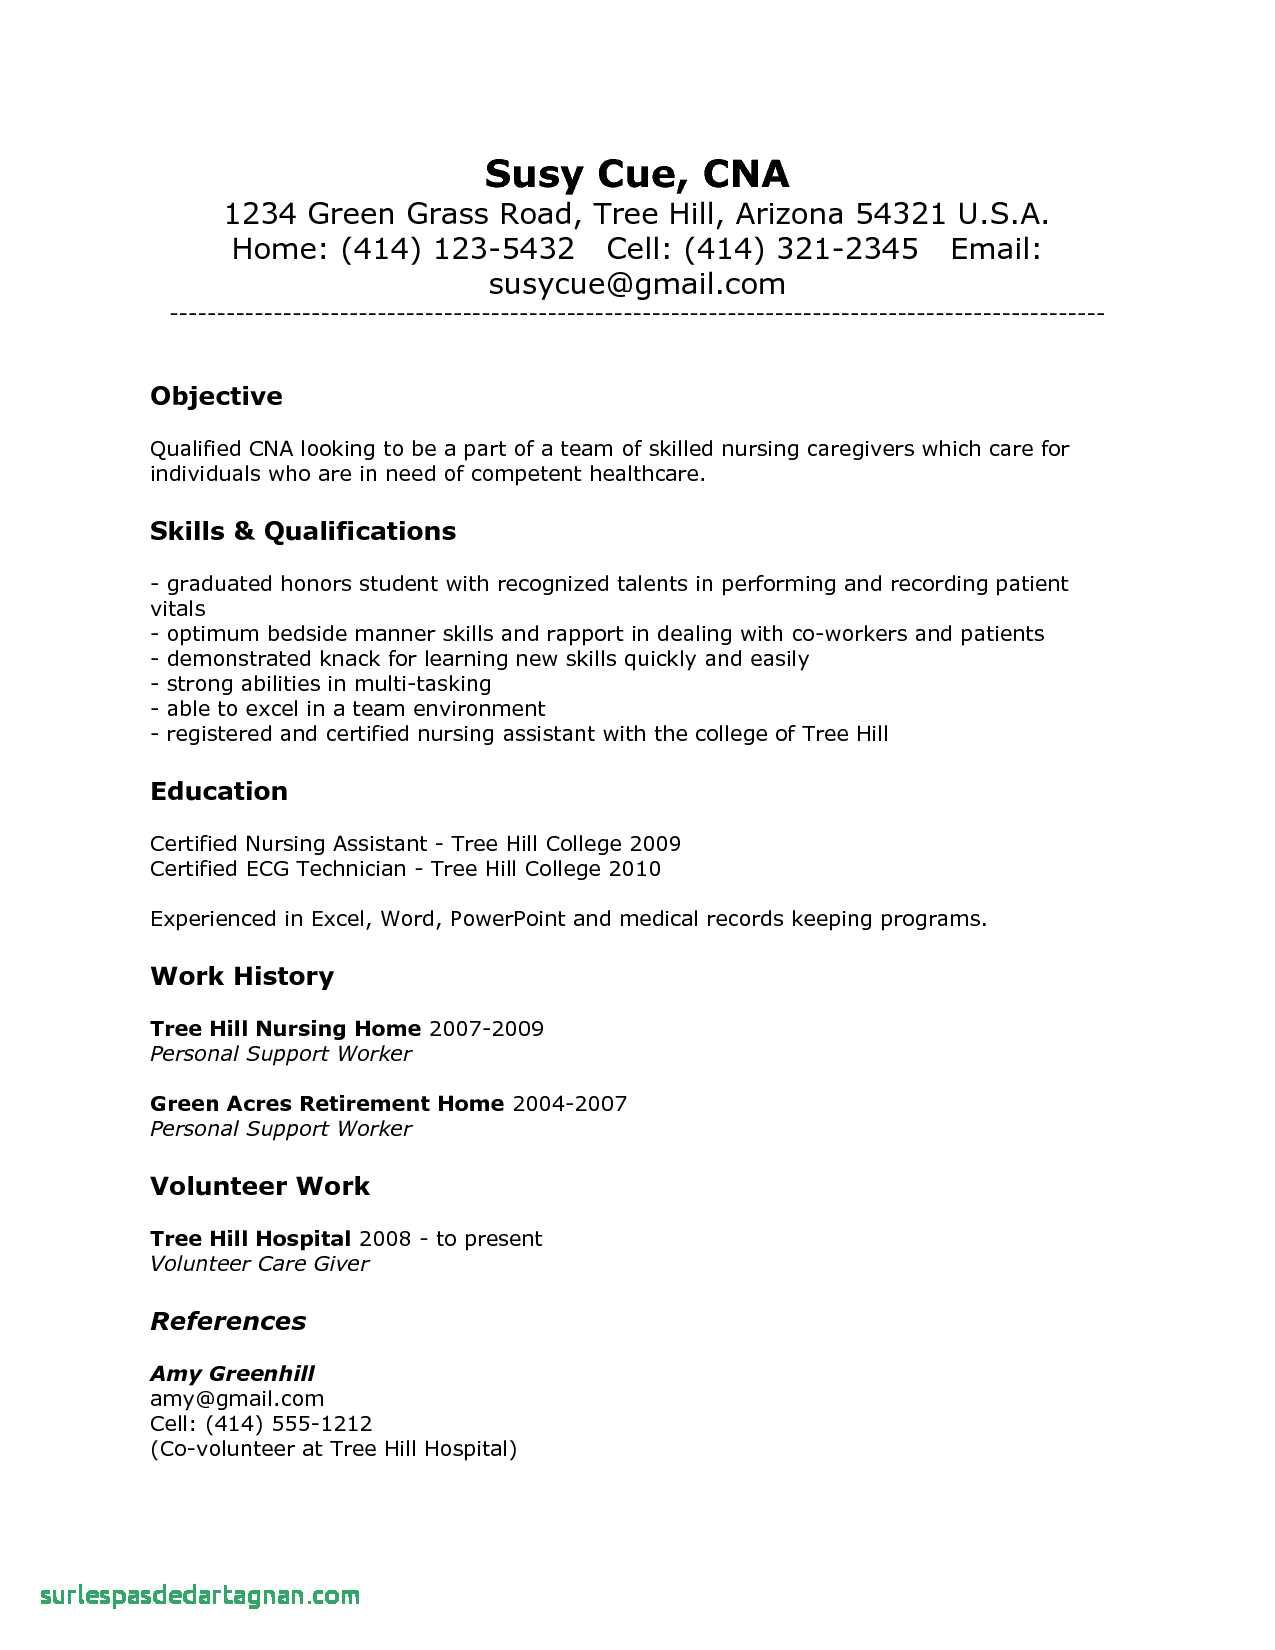 new photos of sample resume for registered nurse without experience no cover letter Resume Cna Resume Skills And Qualifications